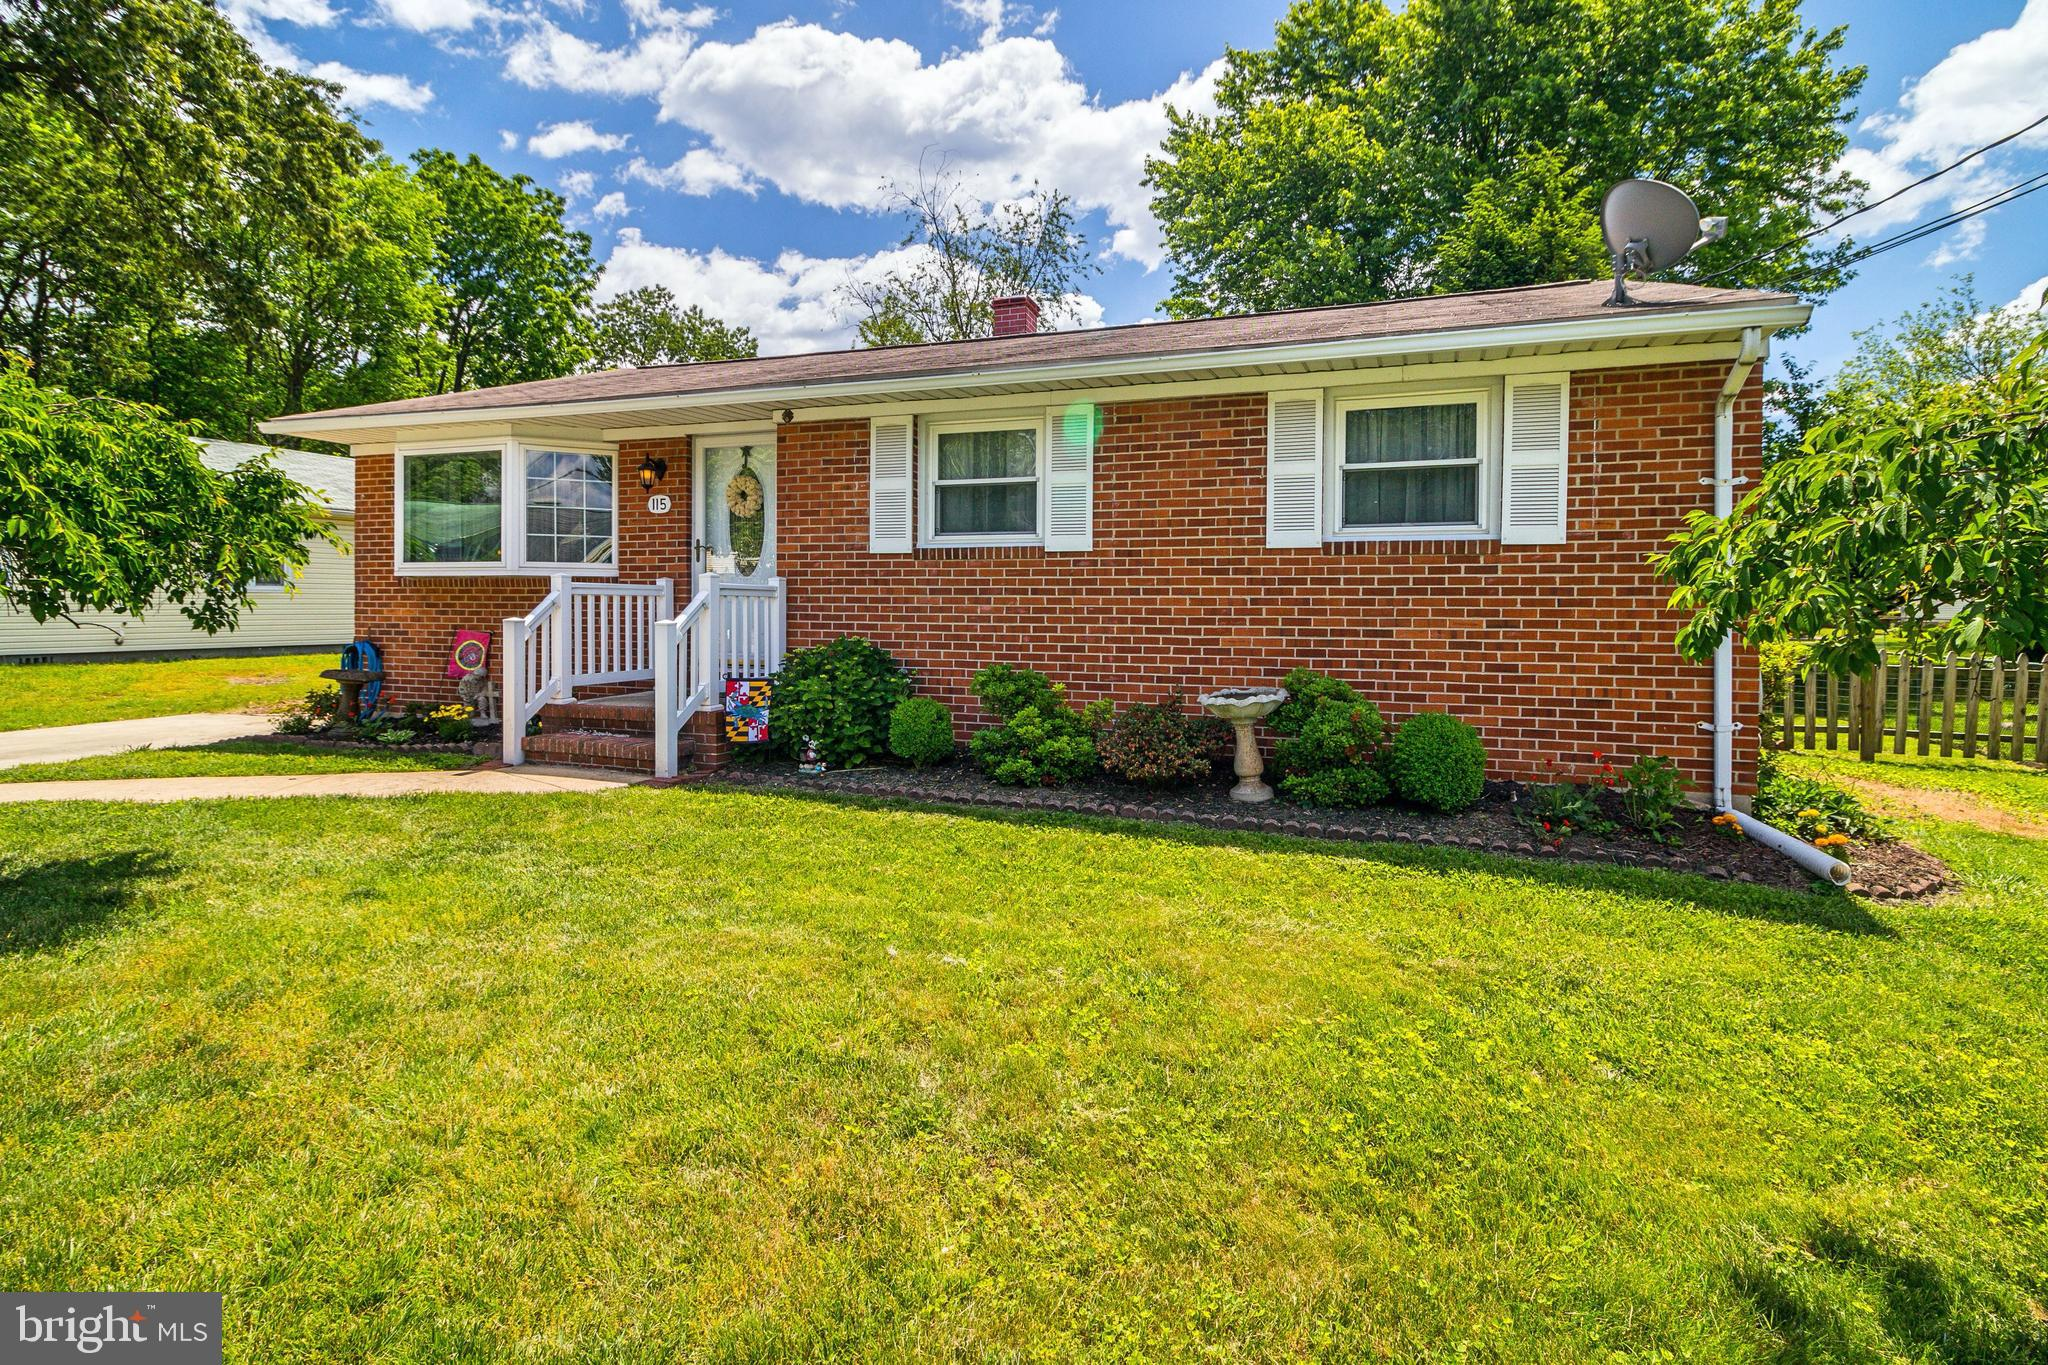 BACK ON THE MARKET - Don't Miss Out, this home is lovely! Enjoy this Brick Ranch style home in Woodlawn Heights on a private and peaceful street.  2126 SQ FEET of living space. Freshly painted, updated light fixtures & bathrooms.  Sliders lead to a 12' x 24' composite deck overlooking a nice sized fenced back yard. Lower level has large rec room area, laundry room and workshop/storage room. Located across the street from the BWI bike path. Easy access to 695, 295, 97, I95 & 95 Minutes from BWI Airport, Light Rail & Marc Train.  Less than 15 minutes form the Ravens & Orioles stadiums. 30 minutes from Annapolis & 45 minutes from Washington, D.C. Easy access to shopping, entertainment & dining. CHECK-OUT THE 3D TOUR IN THE VIRTUAL TOUR LINKS!